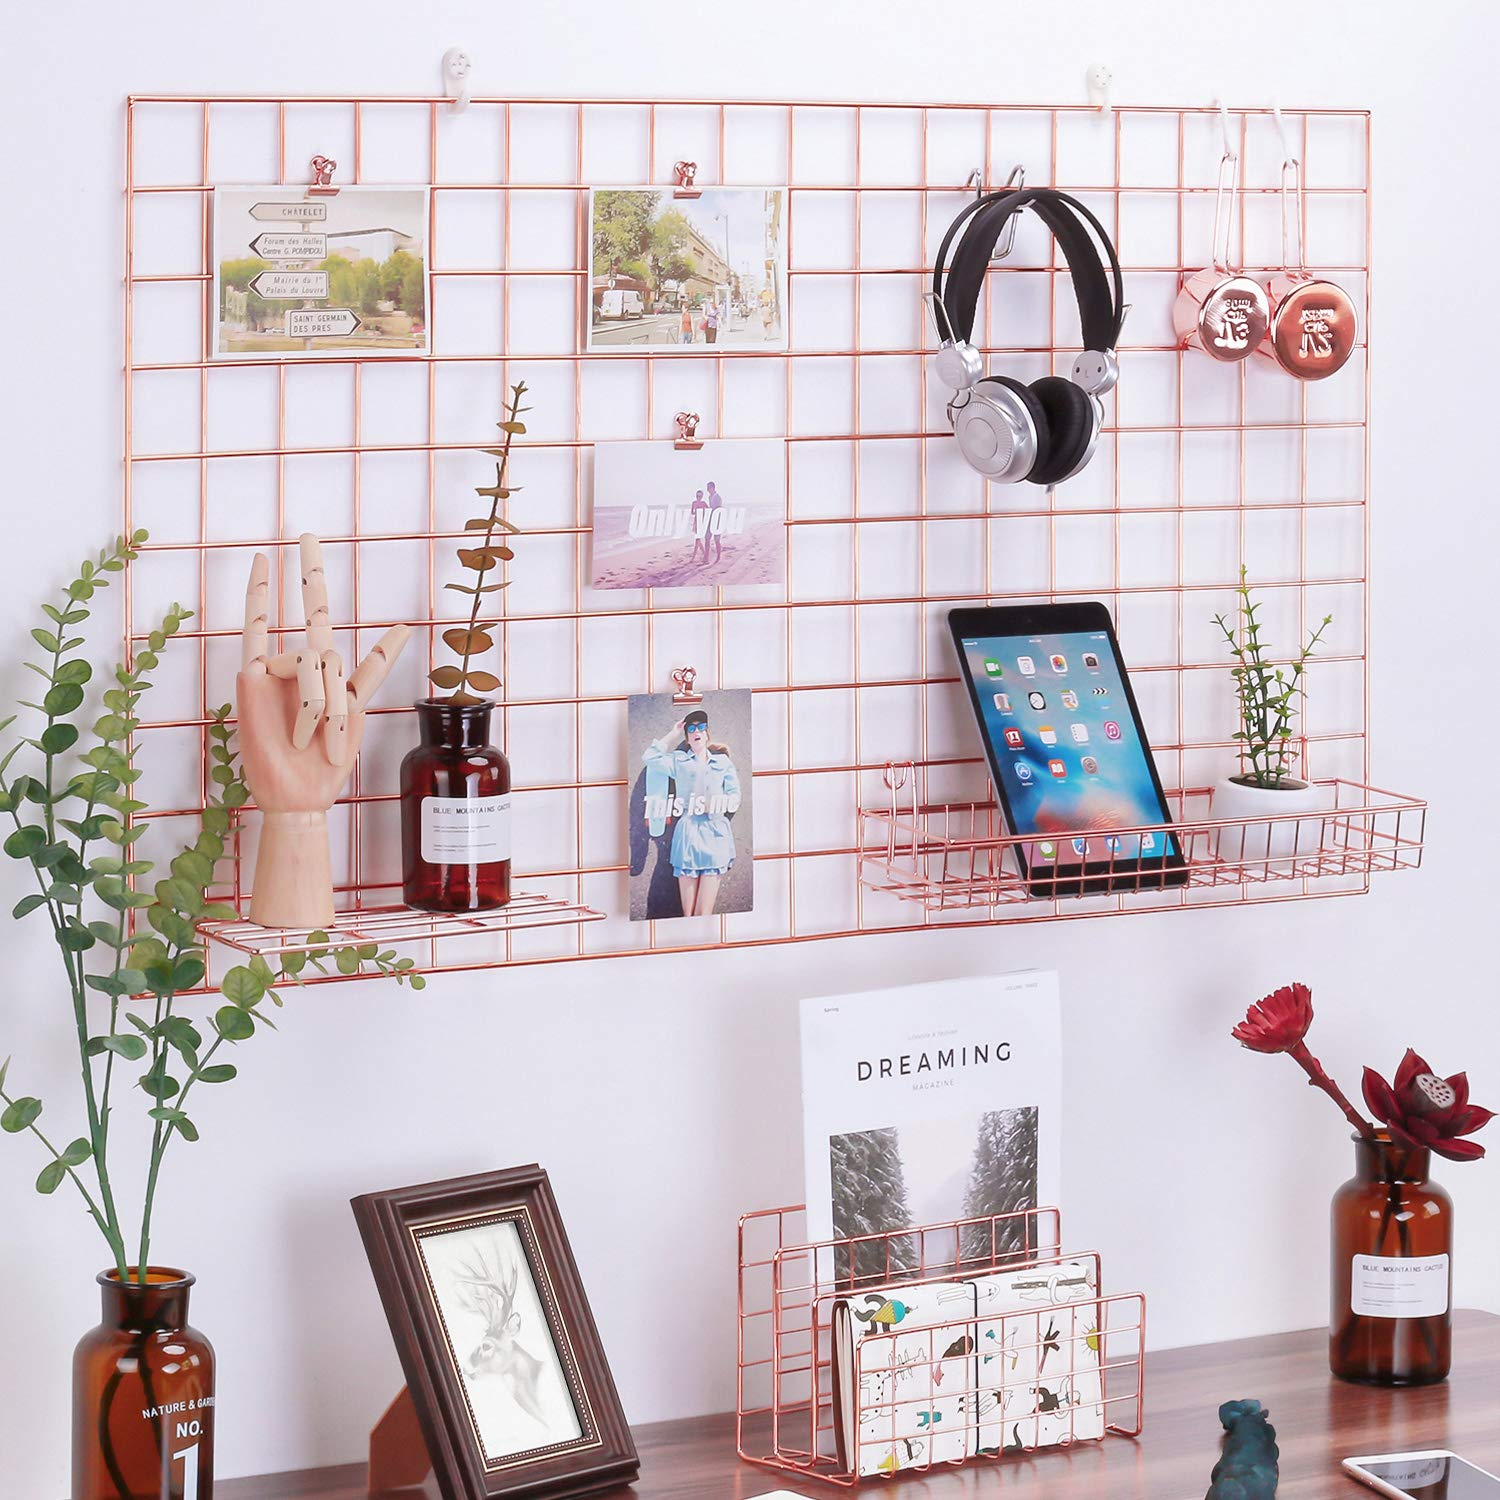 Simmer Stone Rose Gold Wall Grid Panel for Photo Hanging Display & Wall Decoration Organizer, Multi-Functional Wall Storage Display Grid, 5 Clips & 4 Nails Offered, Set of 1, Size 21.2''x37.8'' by Simmer Stone